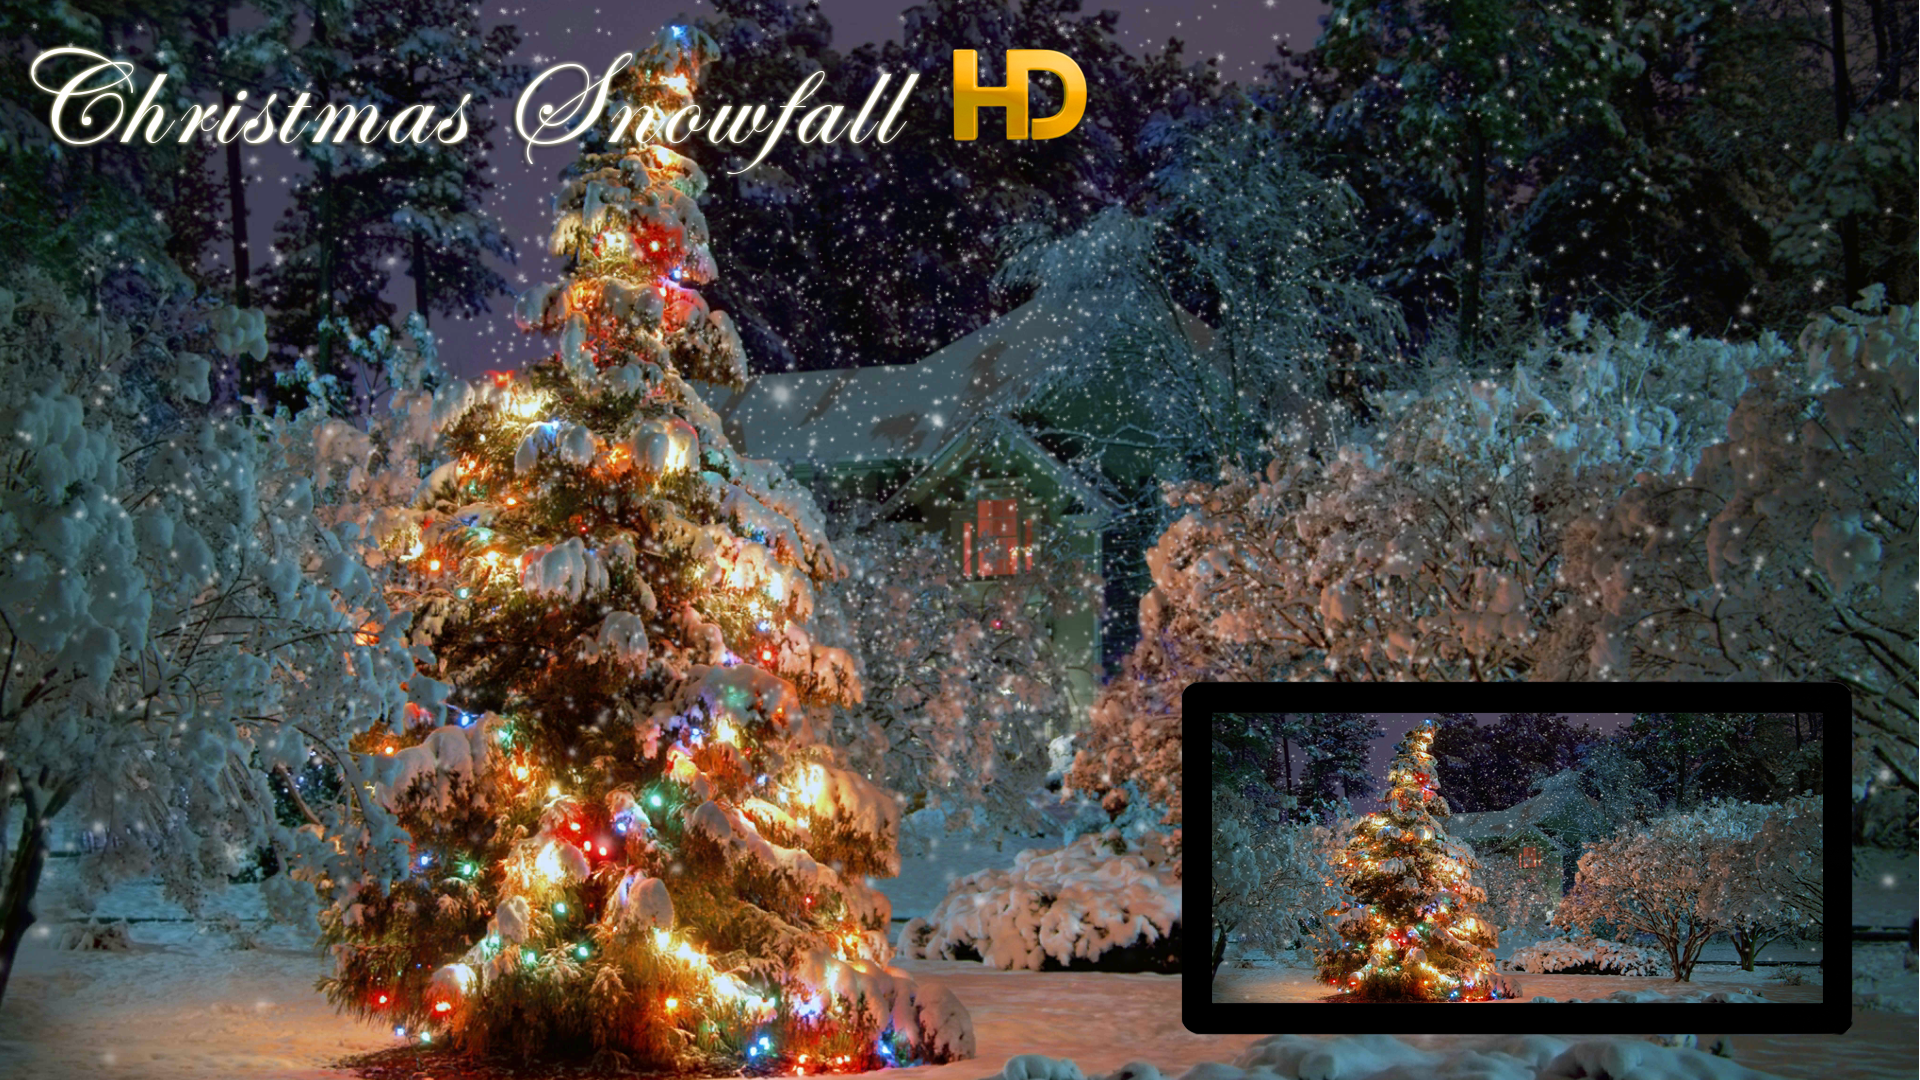 Amazon.com: Christmas Snowfall HD: Appstore for Android